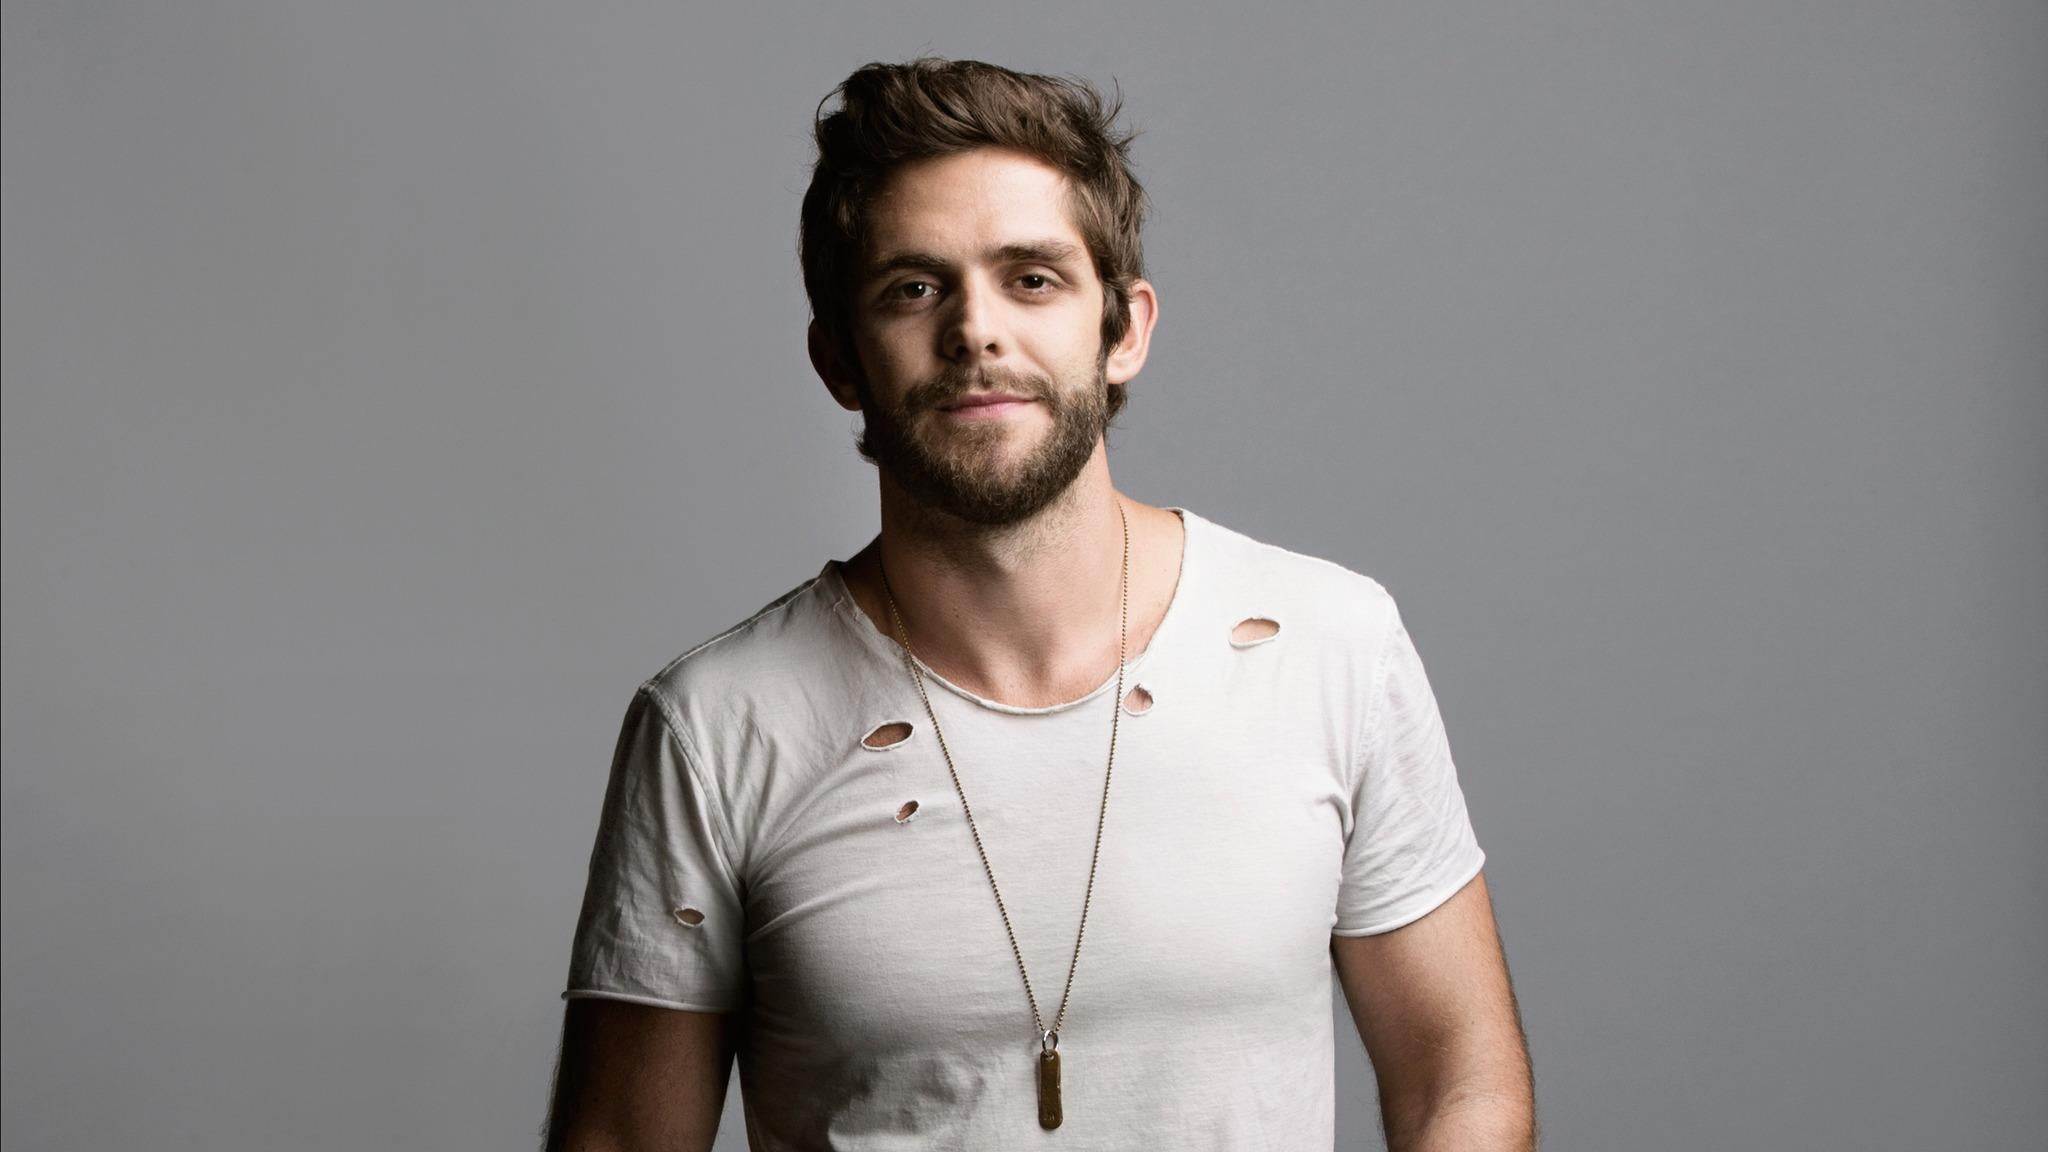 Thomas Rhett: Home Team Tour 2017 at KFC Yum! Center